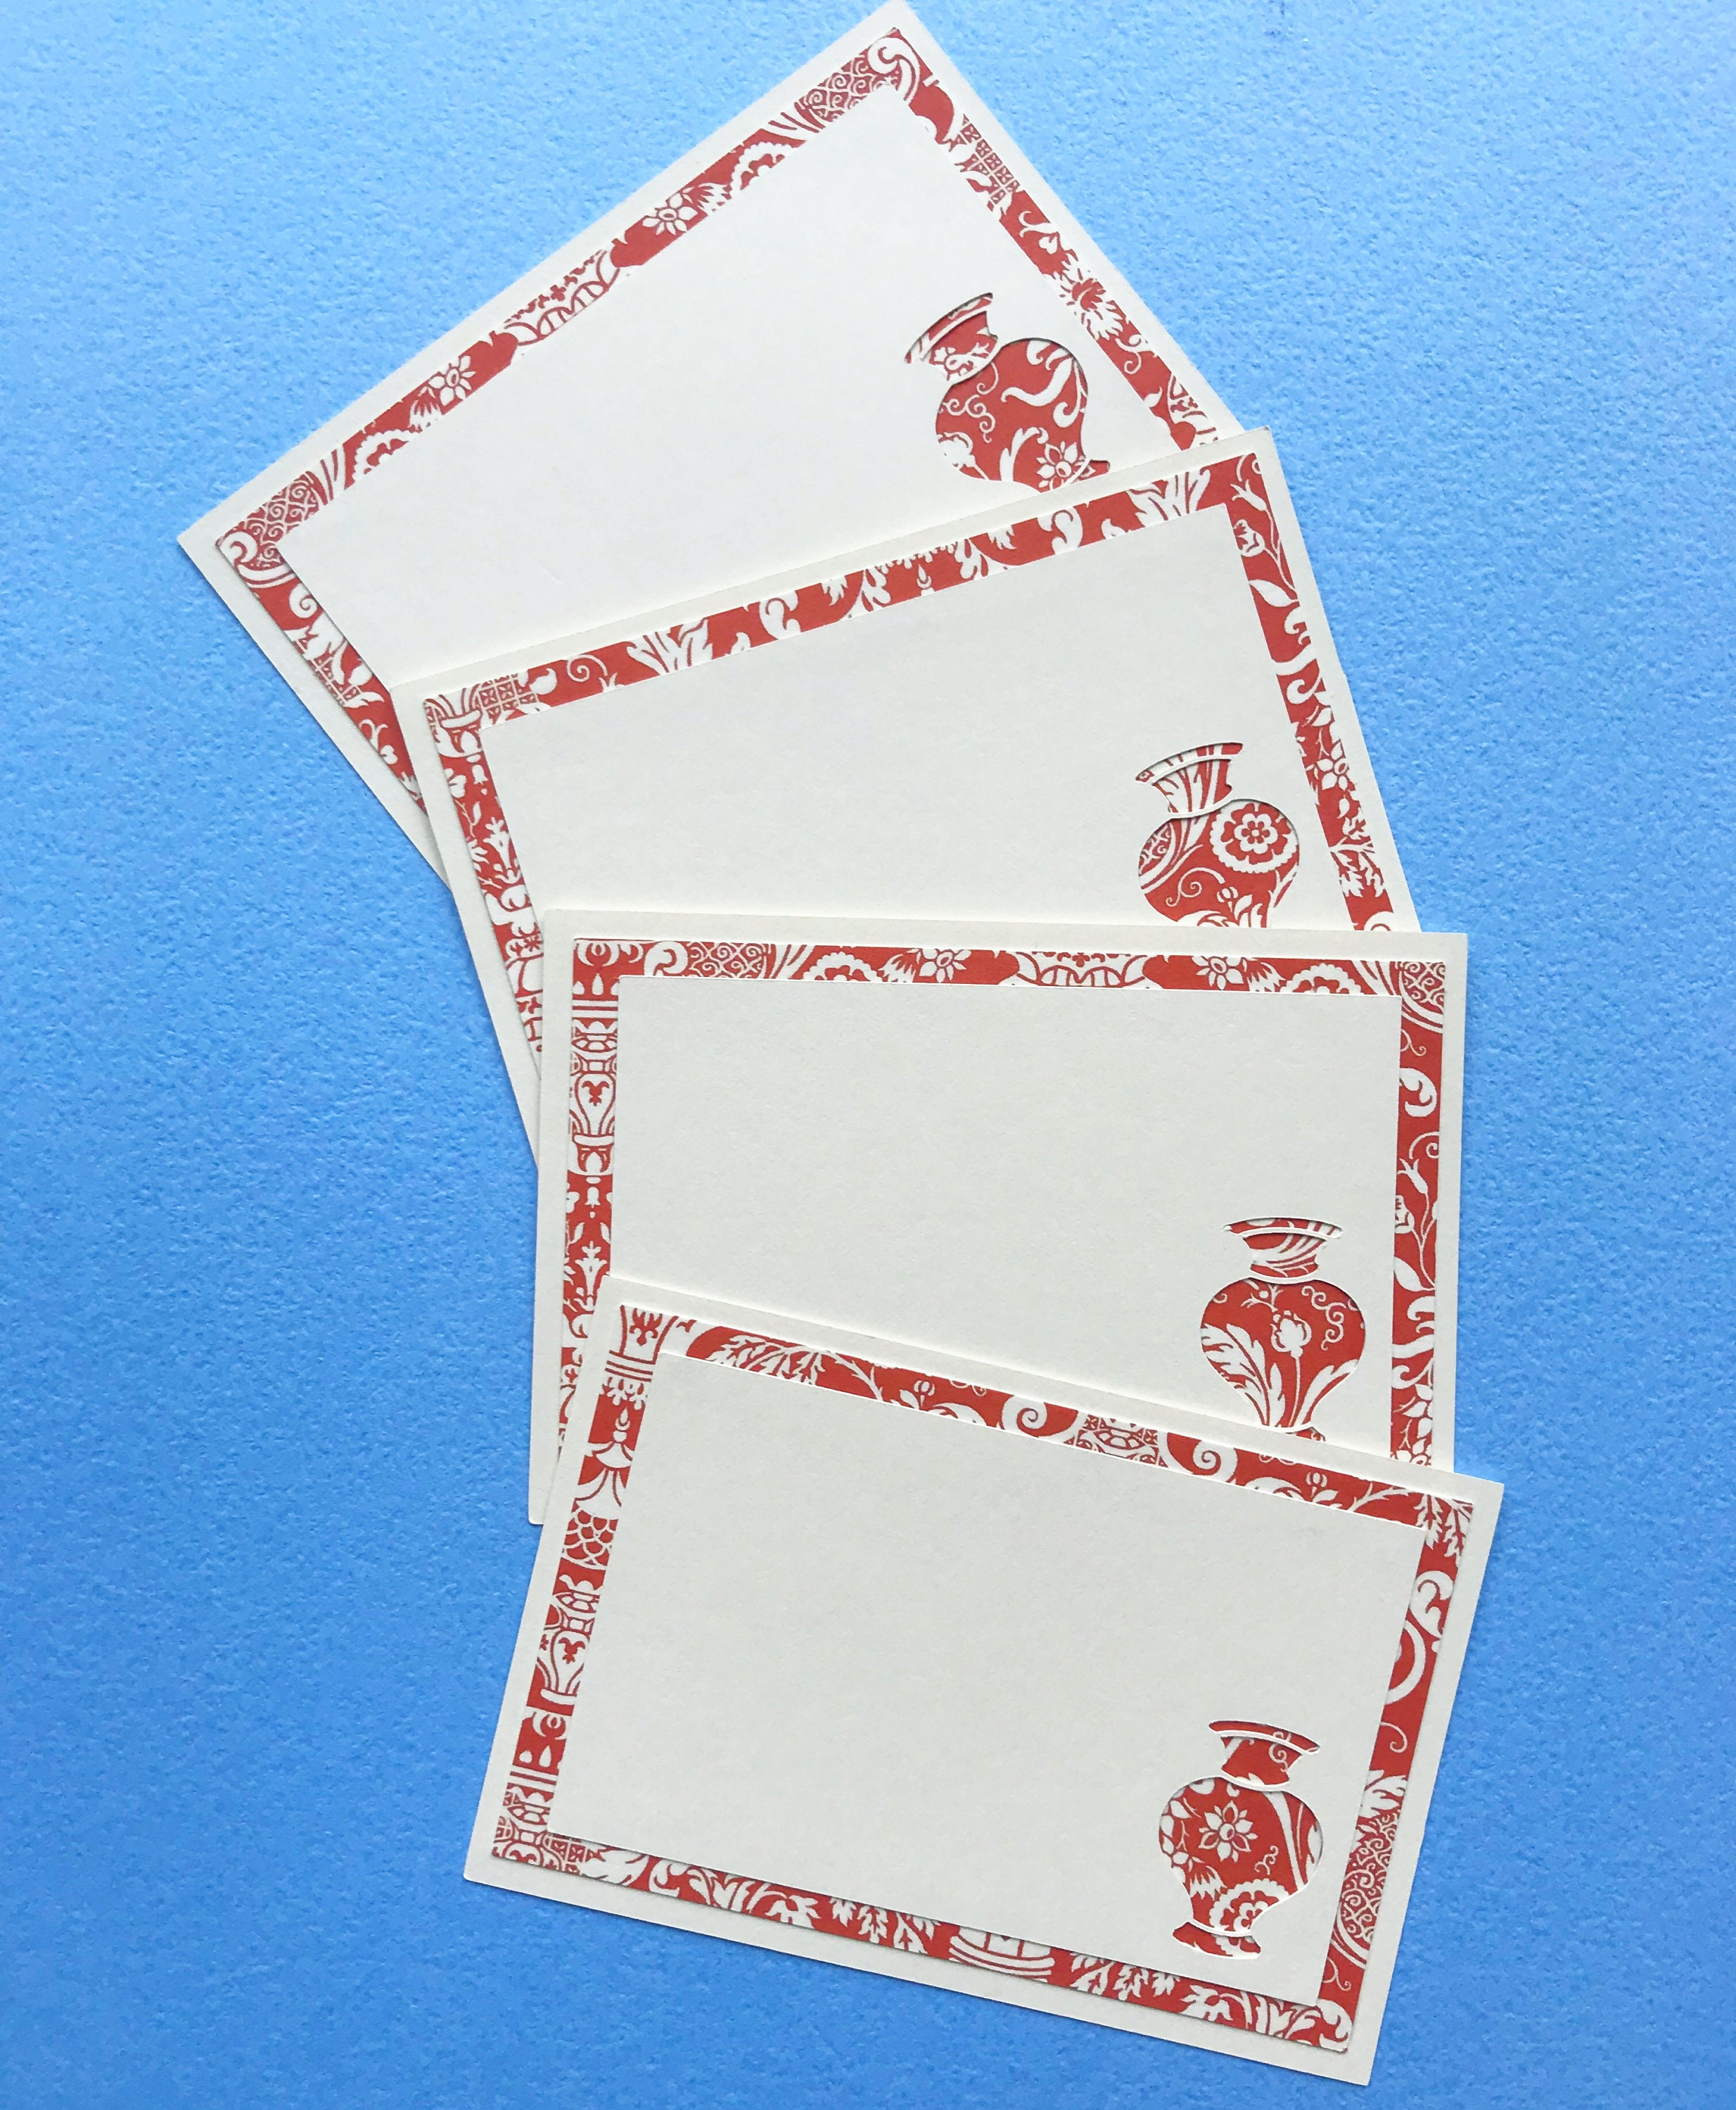 red chinoiserie vase place cards set of 12 red place cards chinoiserie party dinner party wedding escort cards holiday party decor